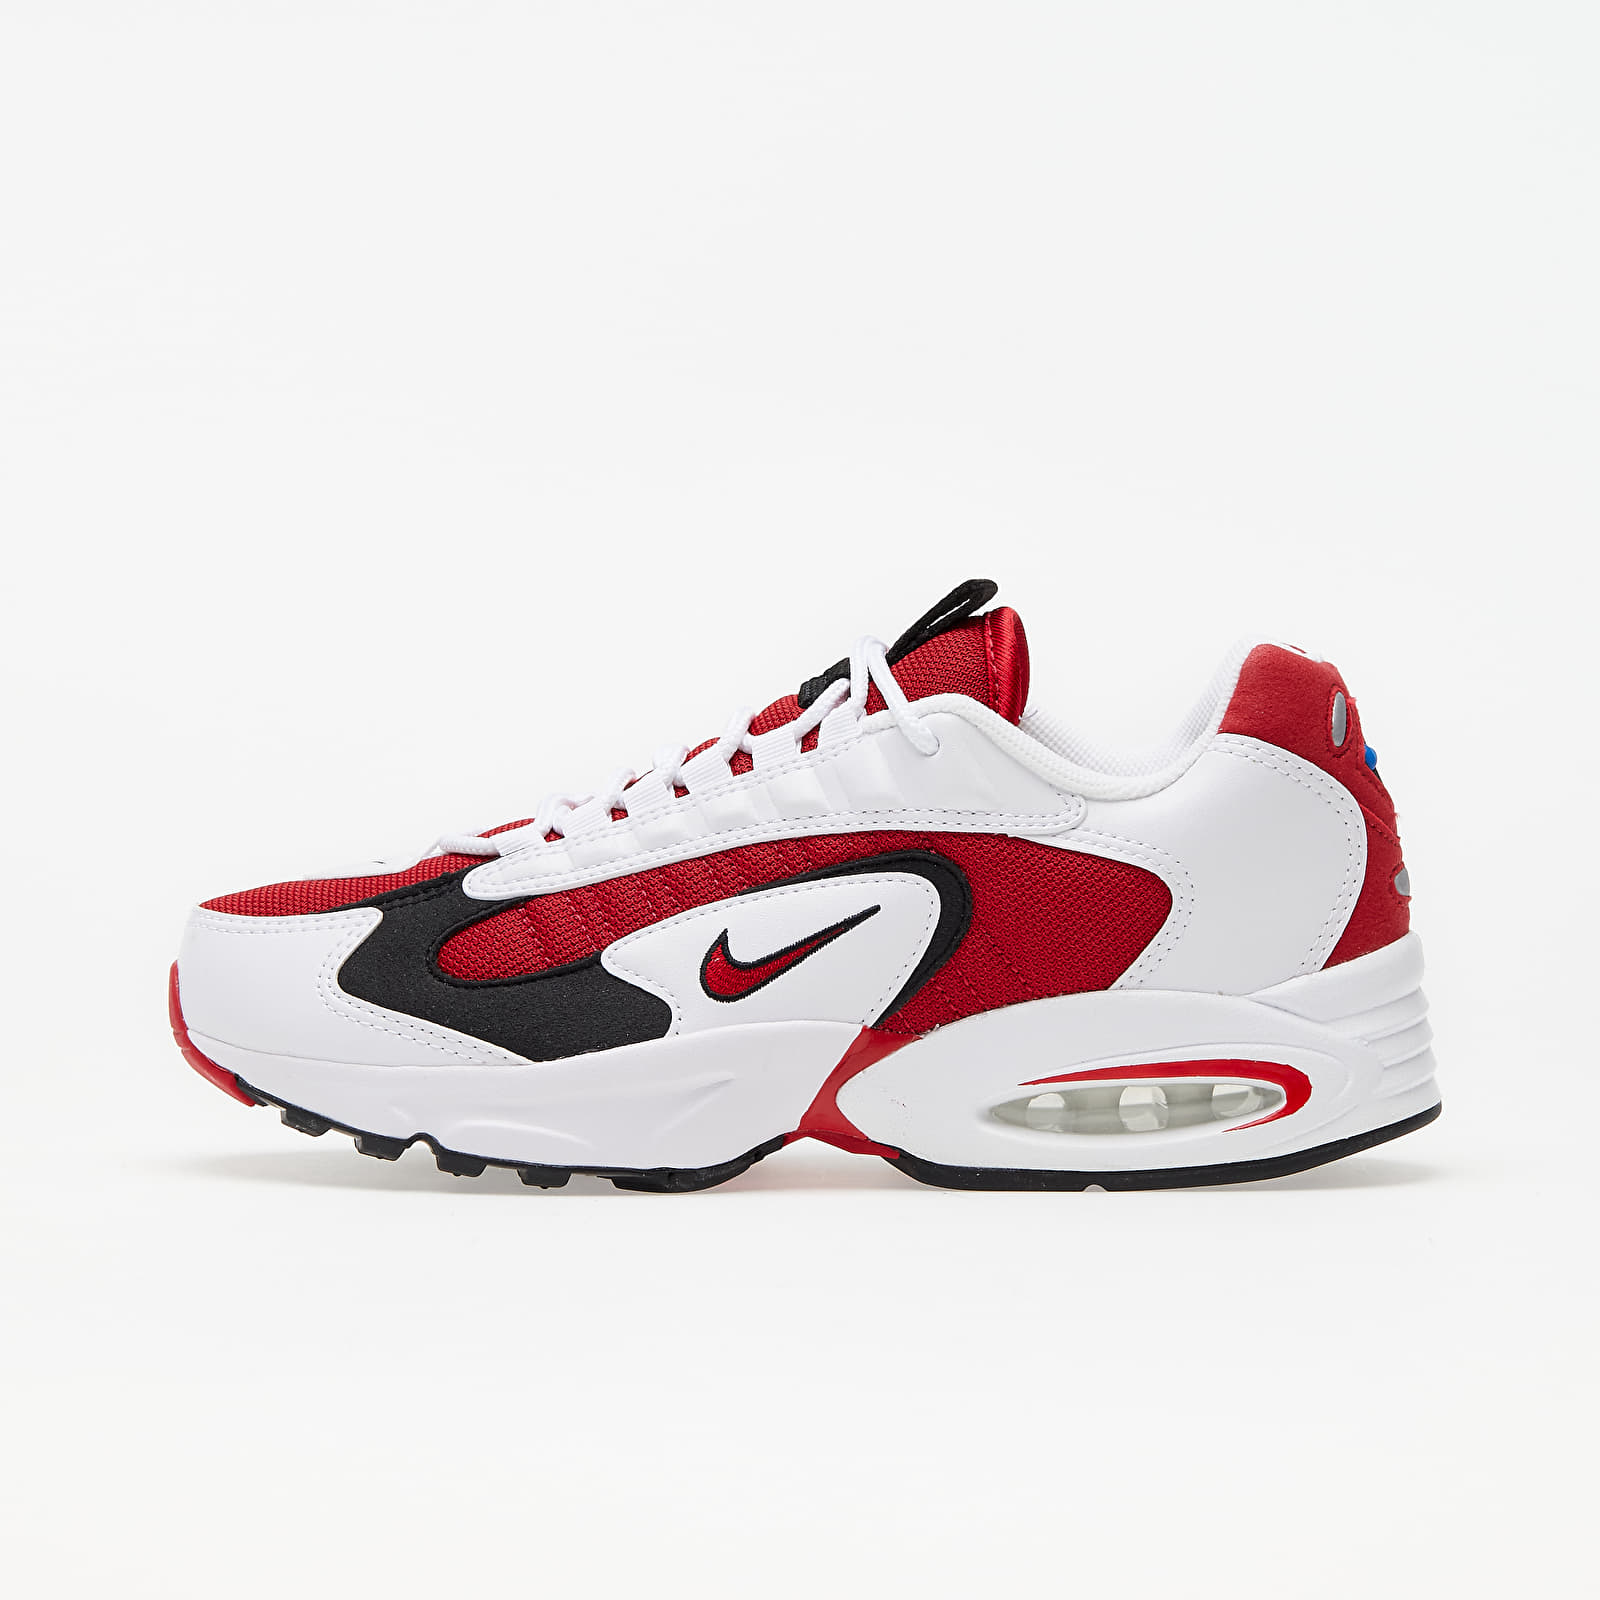 Nike Air Max Triax White/ Gym Red-Black-Soar EUR 40.5